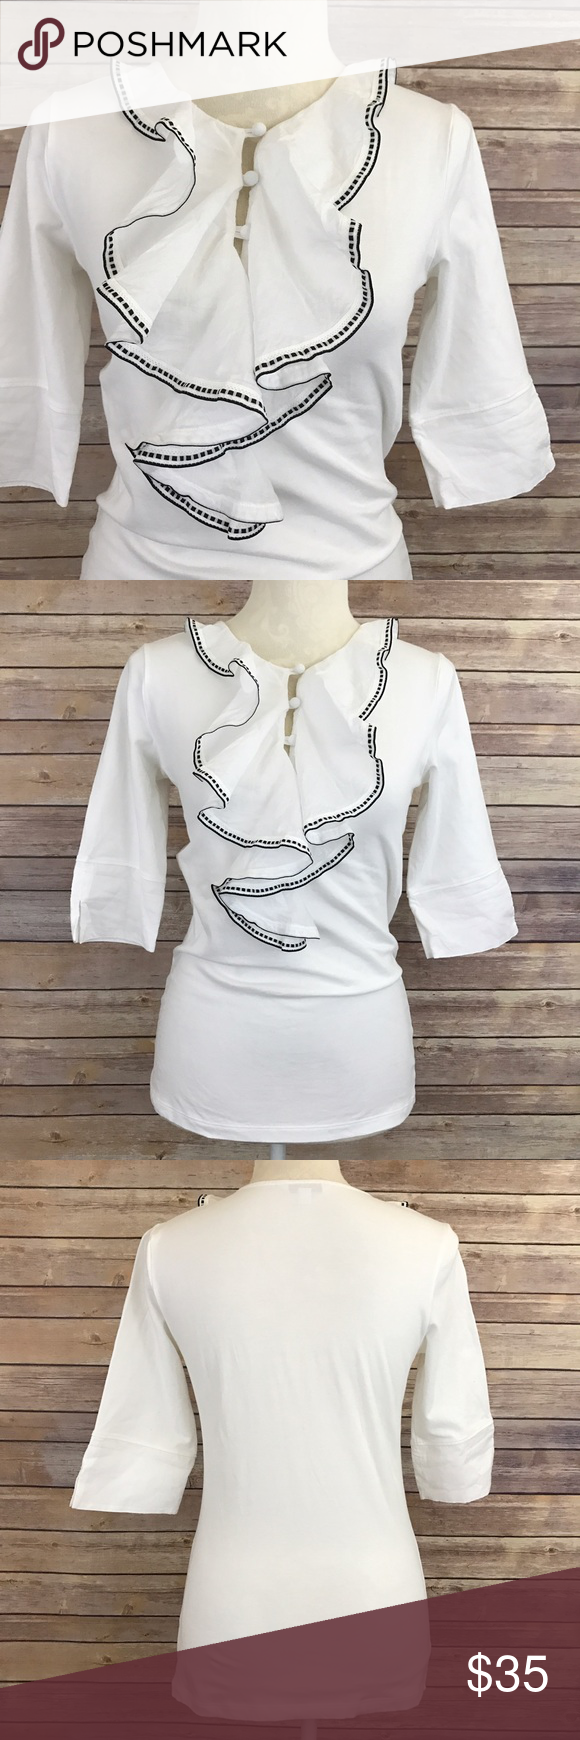 """CAbi Tip Top White Ruffled T-Shirt Style#191 S E1 Bust: 17"""" Length: 25.5""""  Condition: No Rips; No Stains  95% Cotton 5% Spandex   📦I ship orders within 24 Hours! {Except Weekends}📦  🚫No Trades🚫No Holds🚫 CAbi Tops Blouses"""